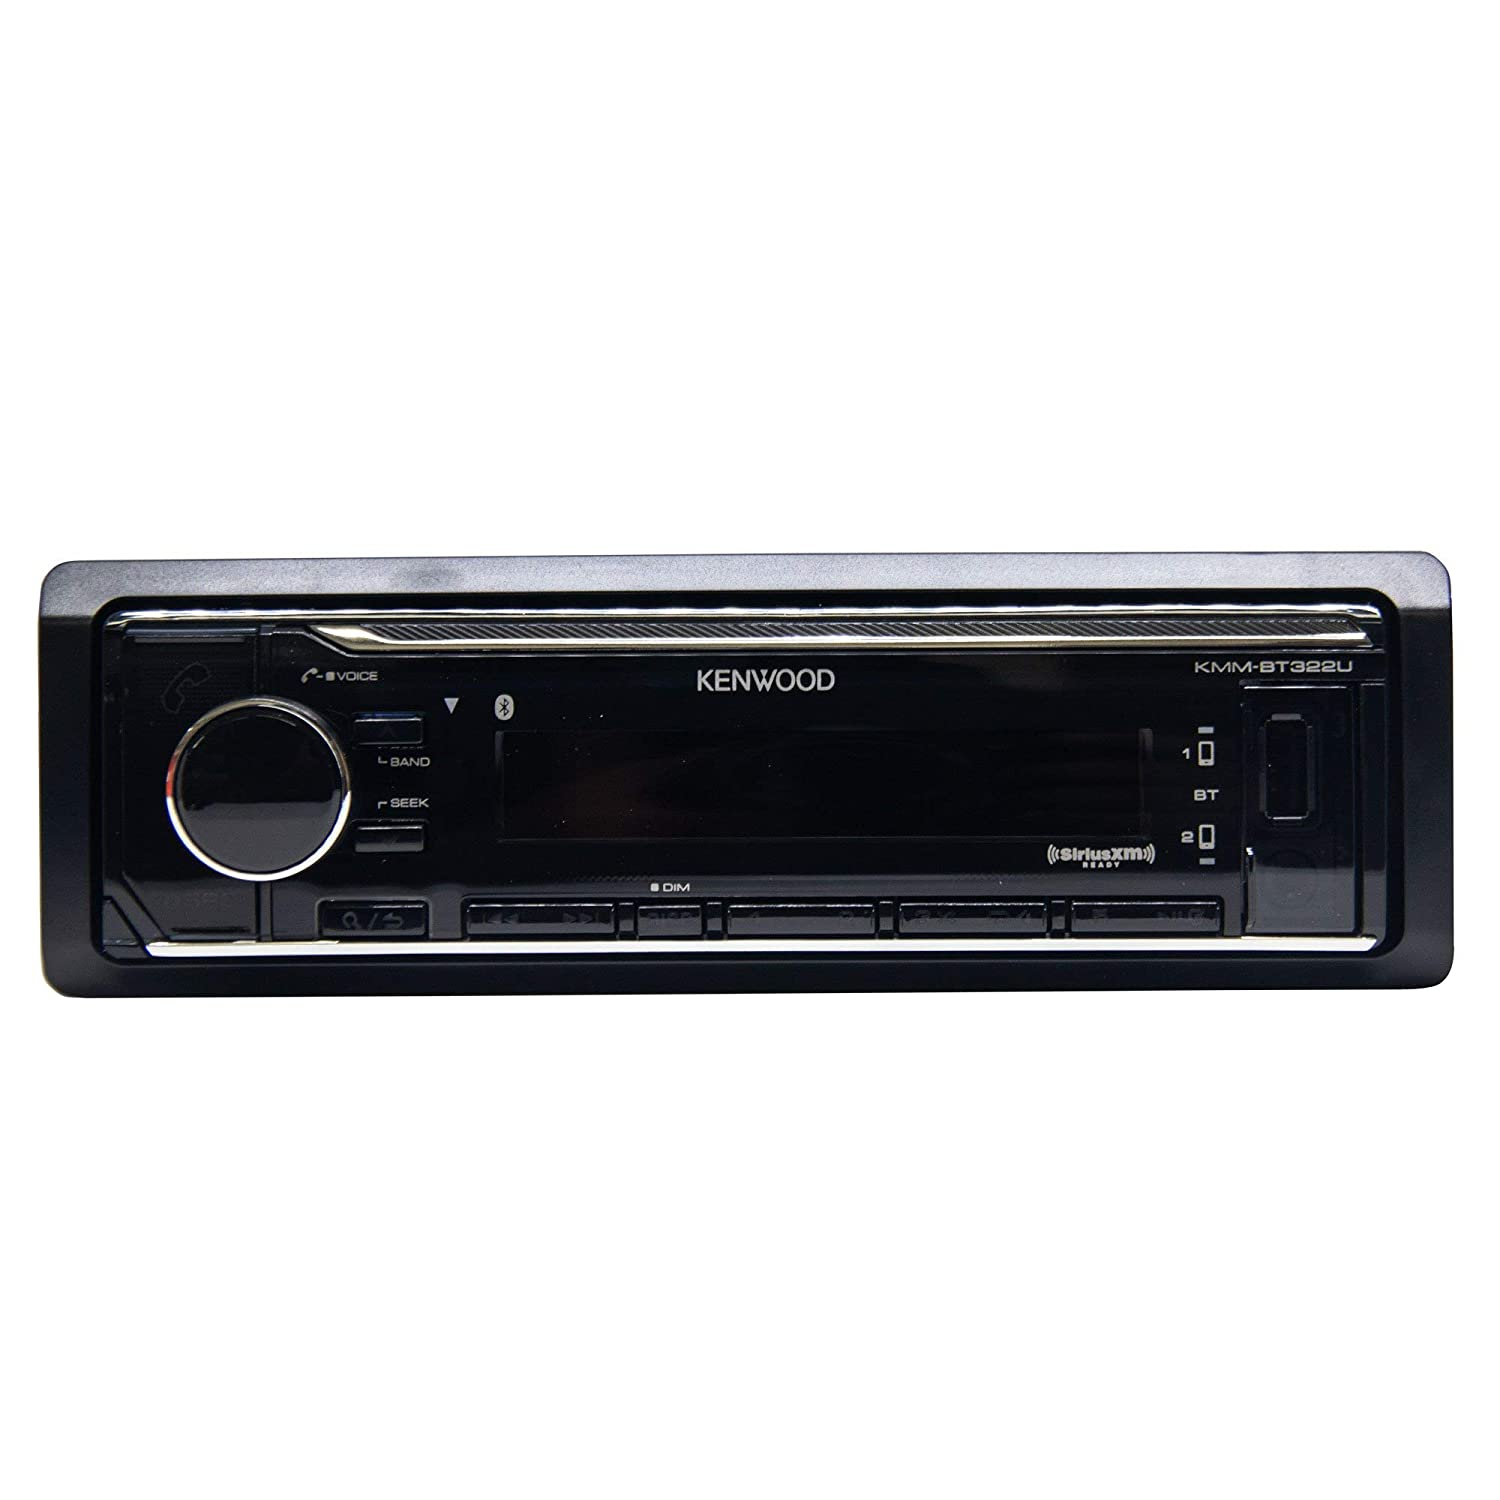 Kenwood KMM-BT322 Car Media Player Bluetooth no cd and no sirius